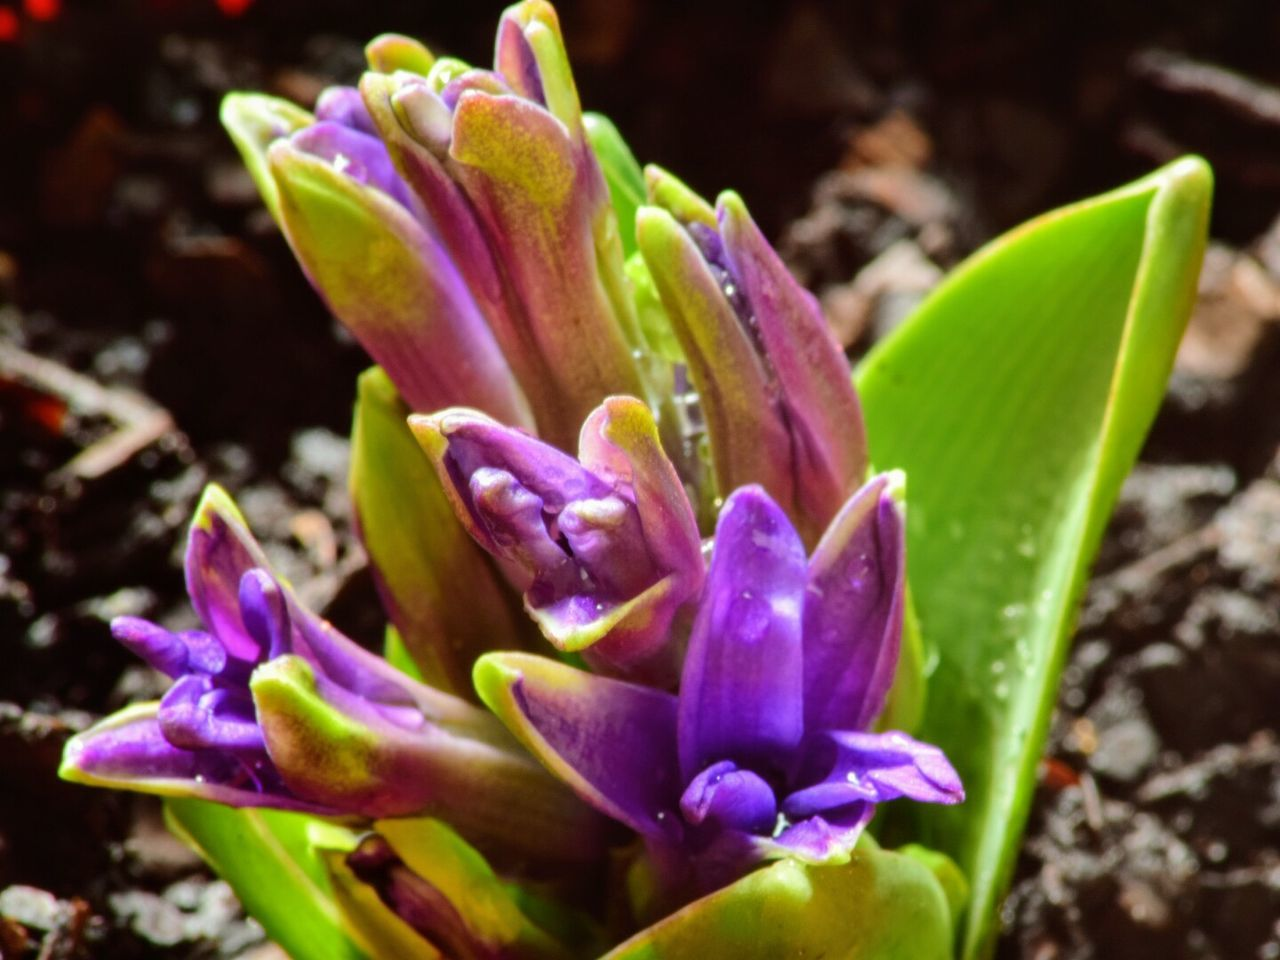 Flower Beauty In Nature Nature Growth Freshness Fragility Purple Close-up Petal Focus On Foreground Blooming Outdoors Spring Photography Springtime Spring Colours Nature_collection Plant Freshness Leaf Beauty In Nature Nature Growth Green Color Blossom Nature Photography